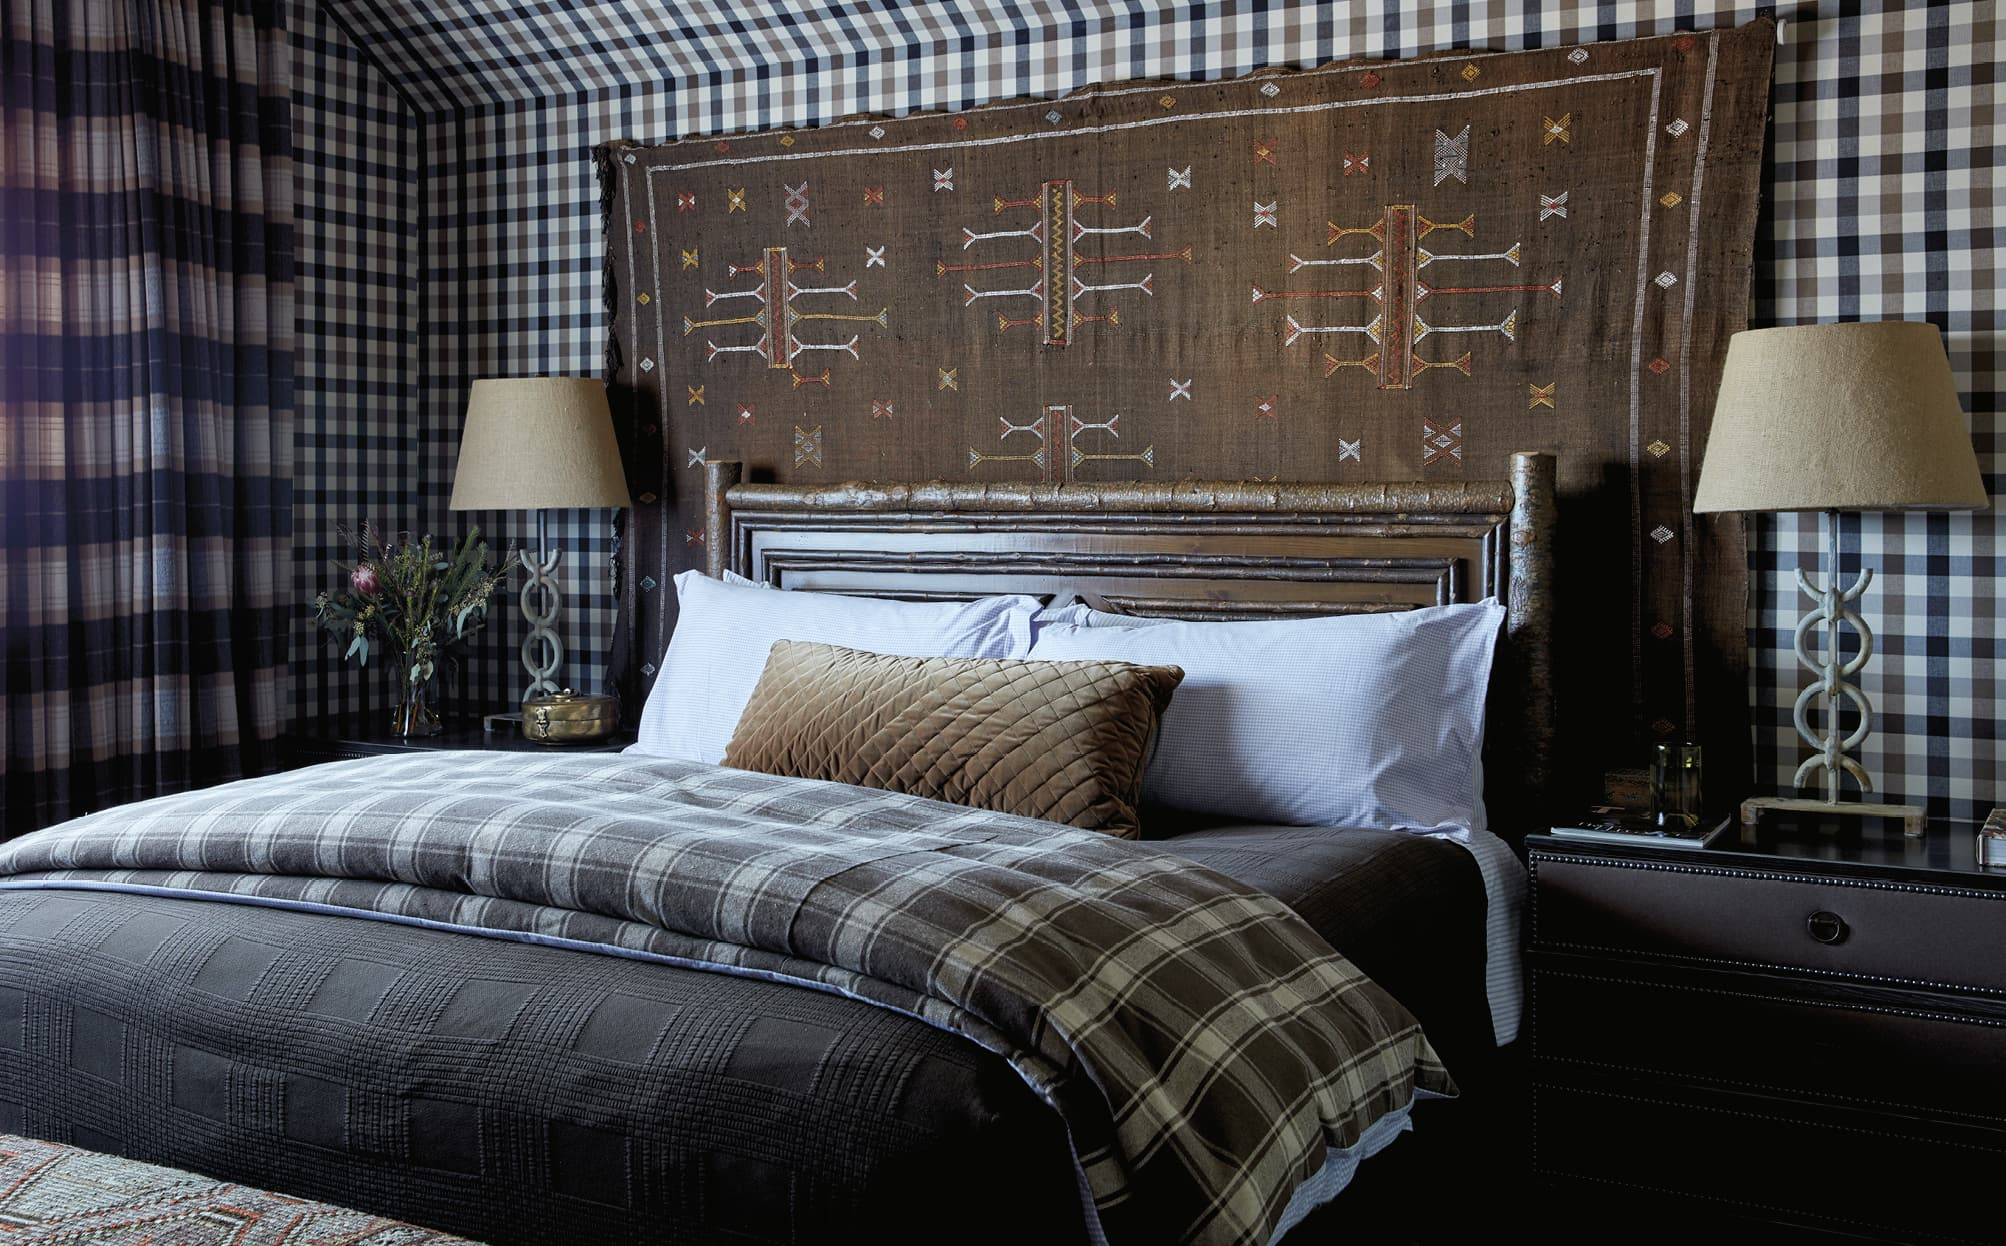 Bedroom with a large tapestry and plaid walls